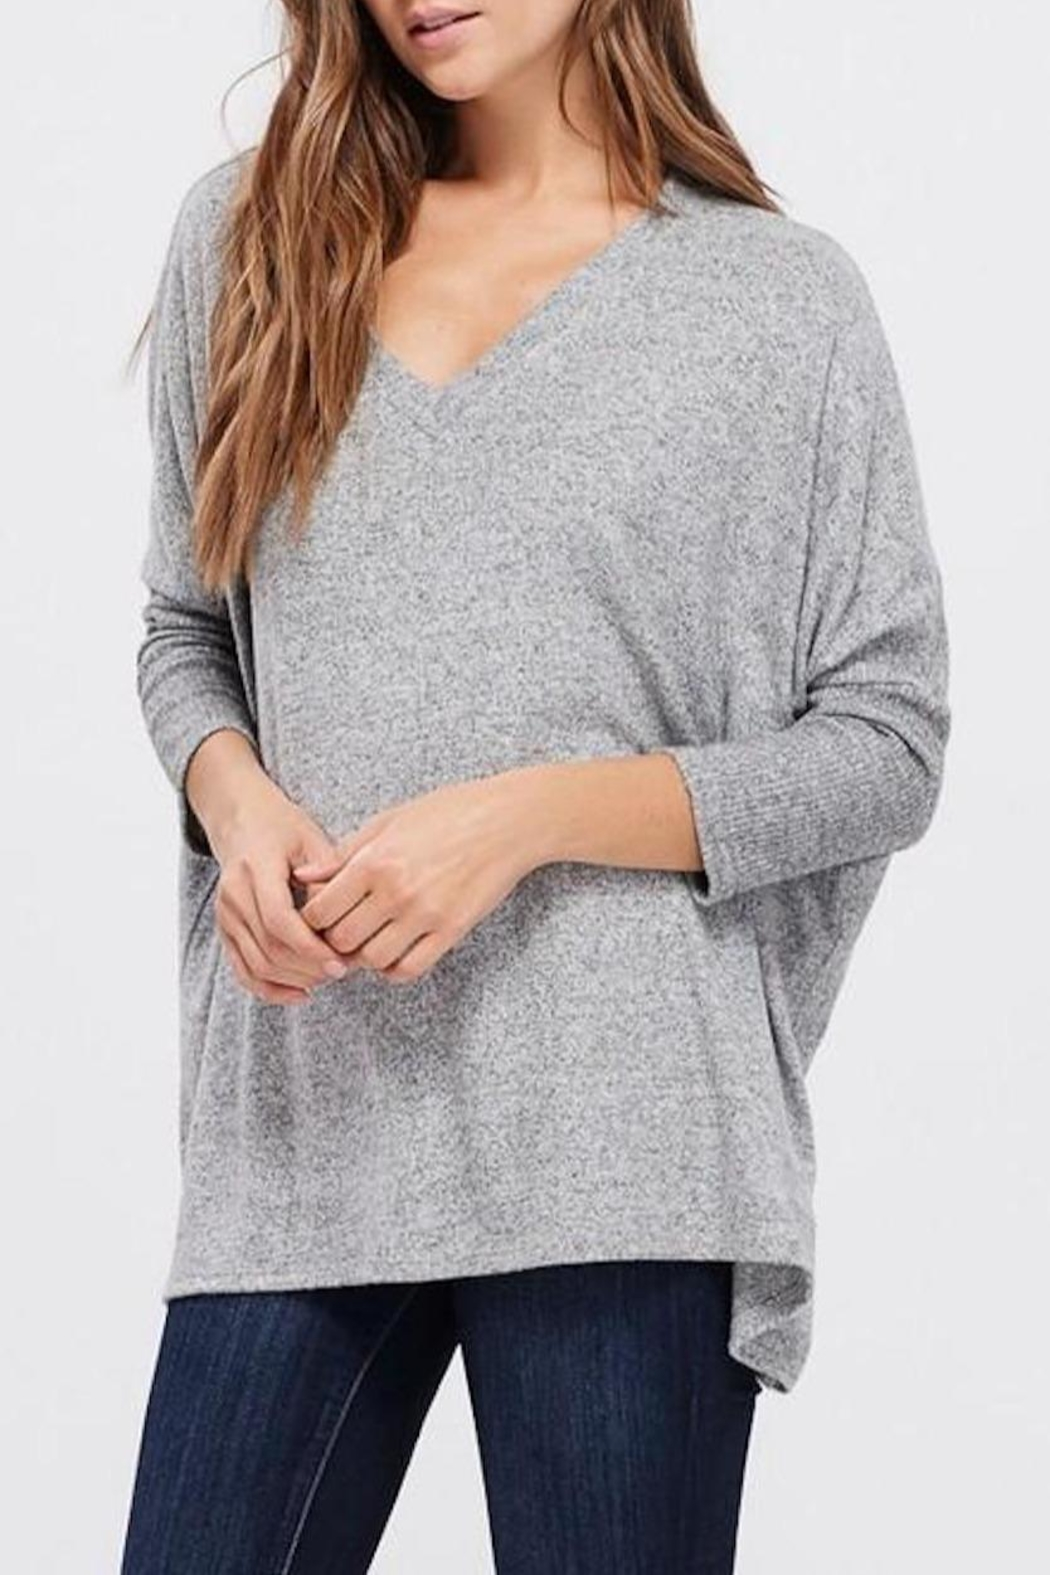 Cherish Dolman-Sleeve Knit Top - Front Full Image